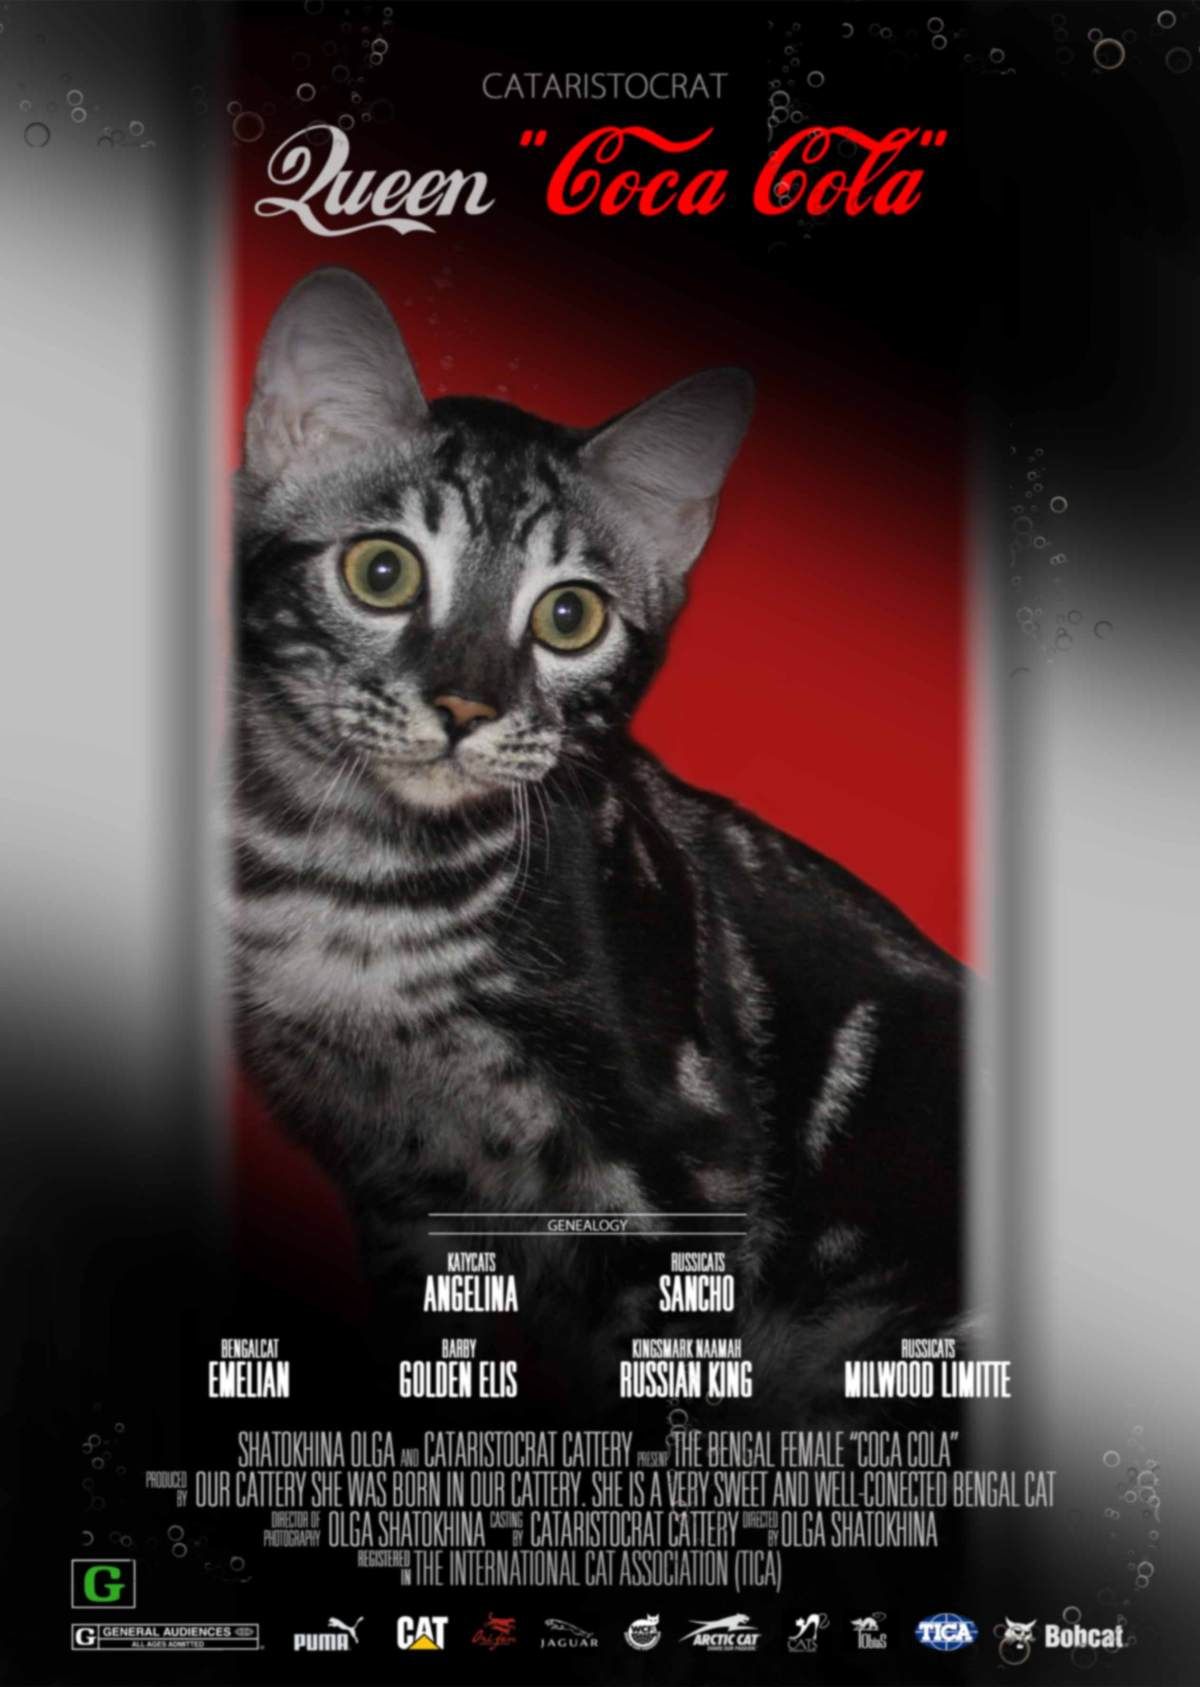 Bengal cat COCA COLA movie Poster CATARISTOCRAT